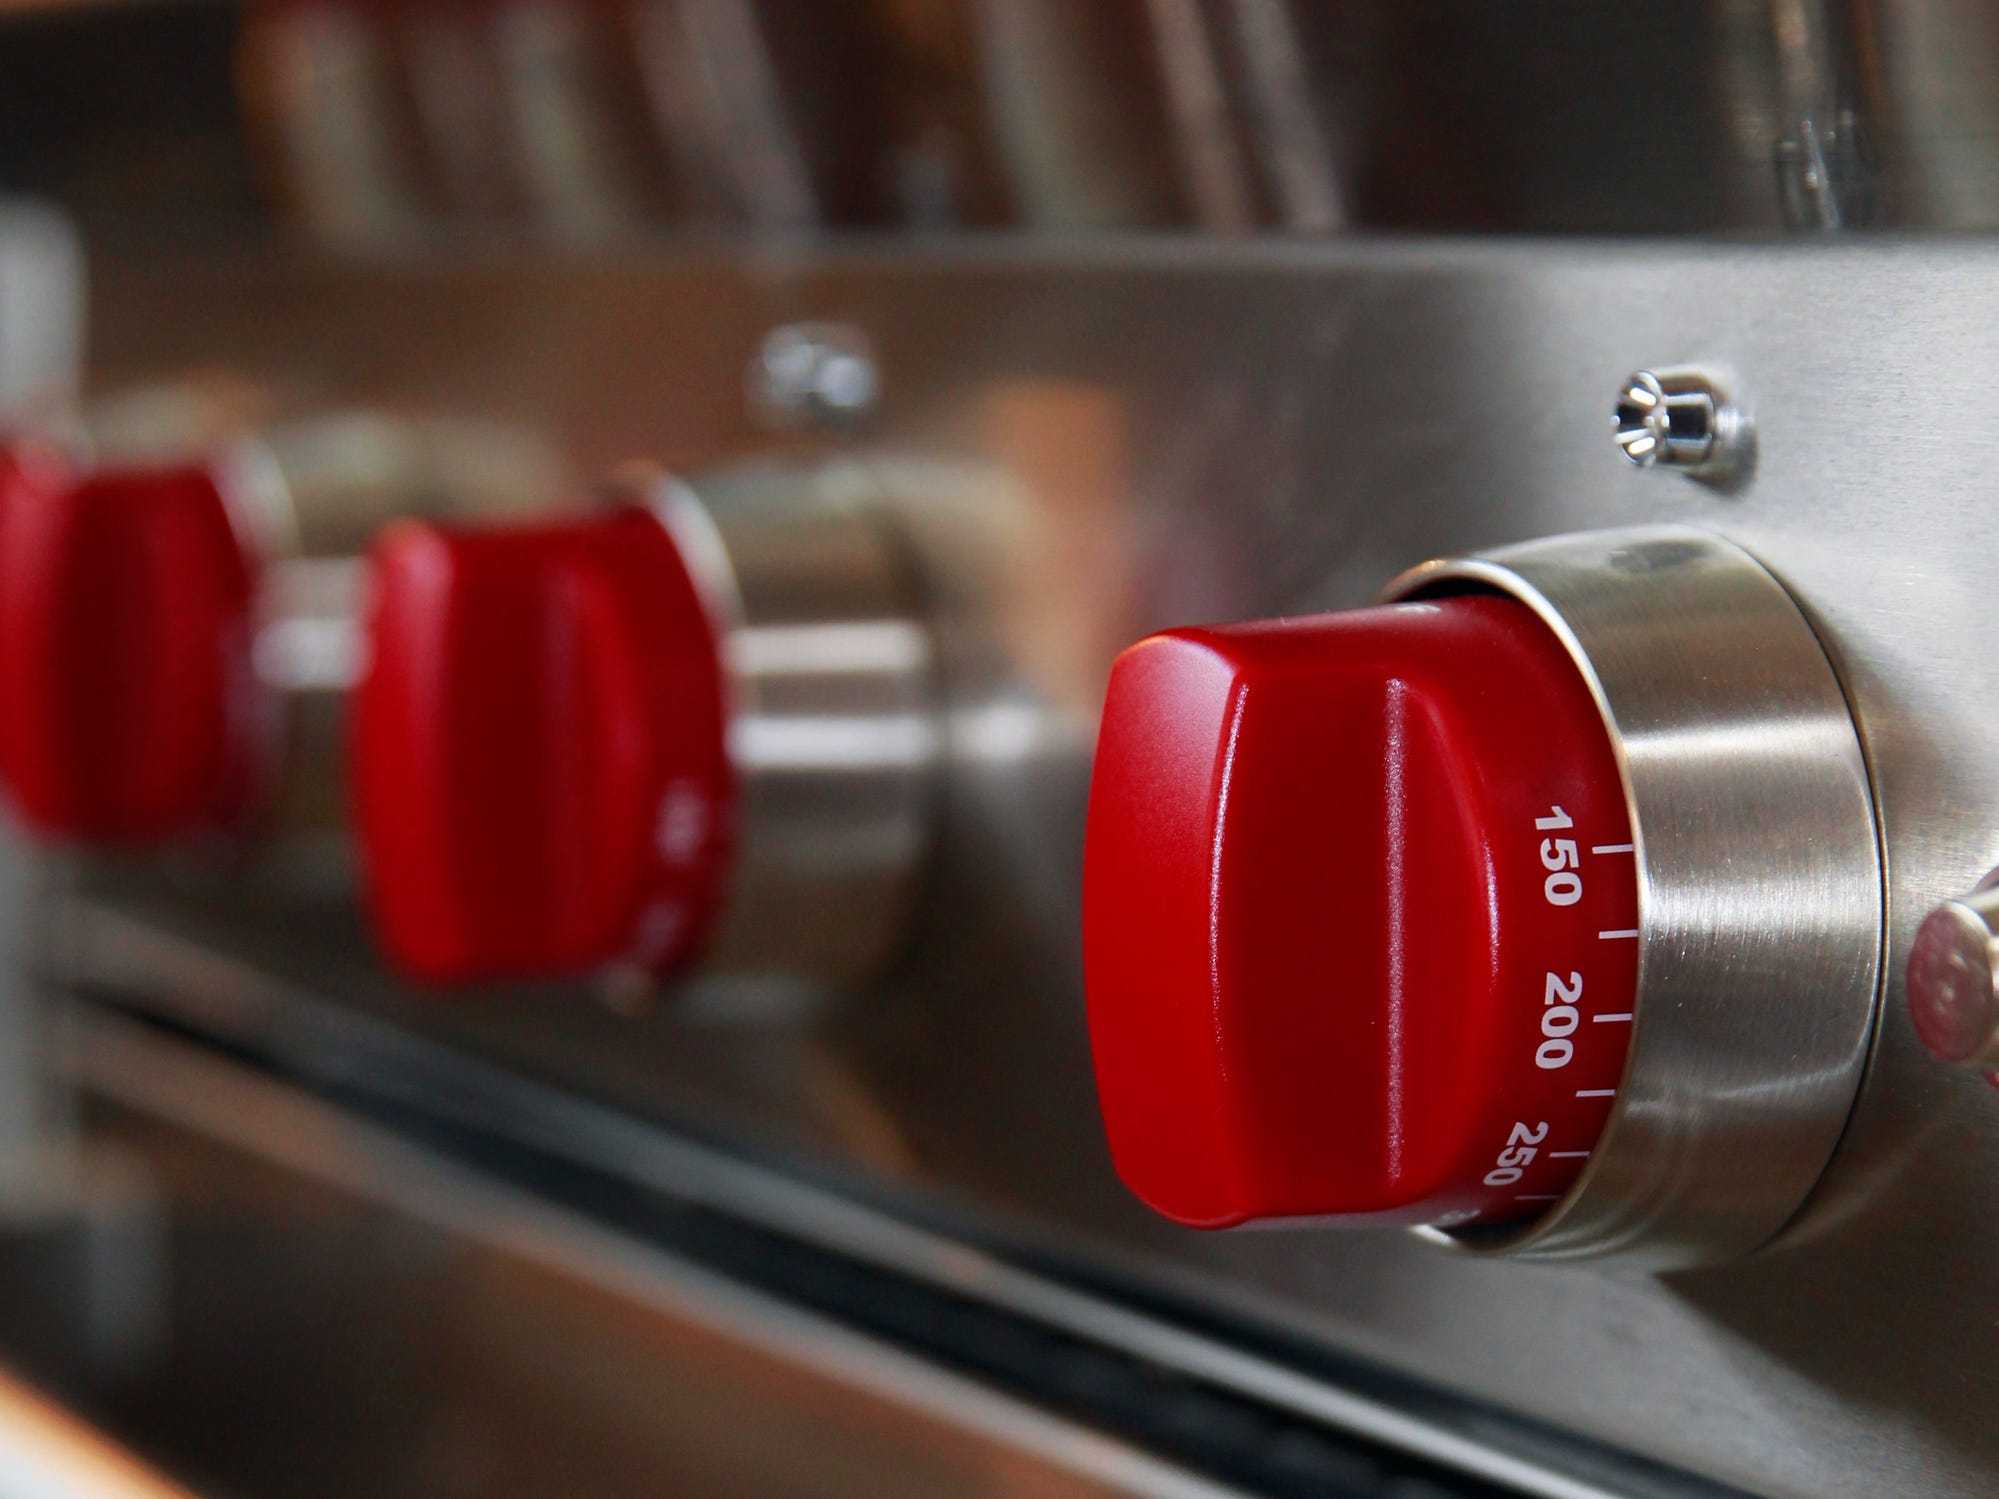 The red knobs on this Wolf stove add a splash of color to the kitchen. Red is Laura Goranson's favorite color.